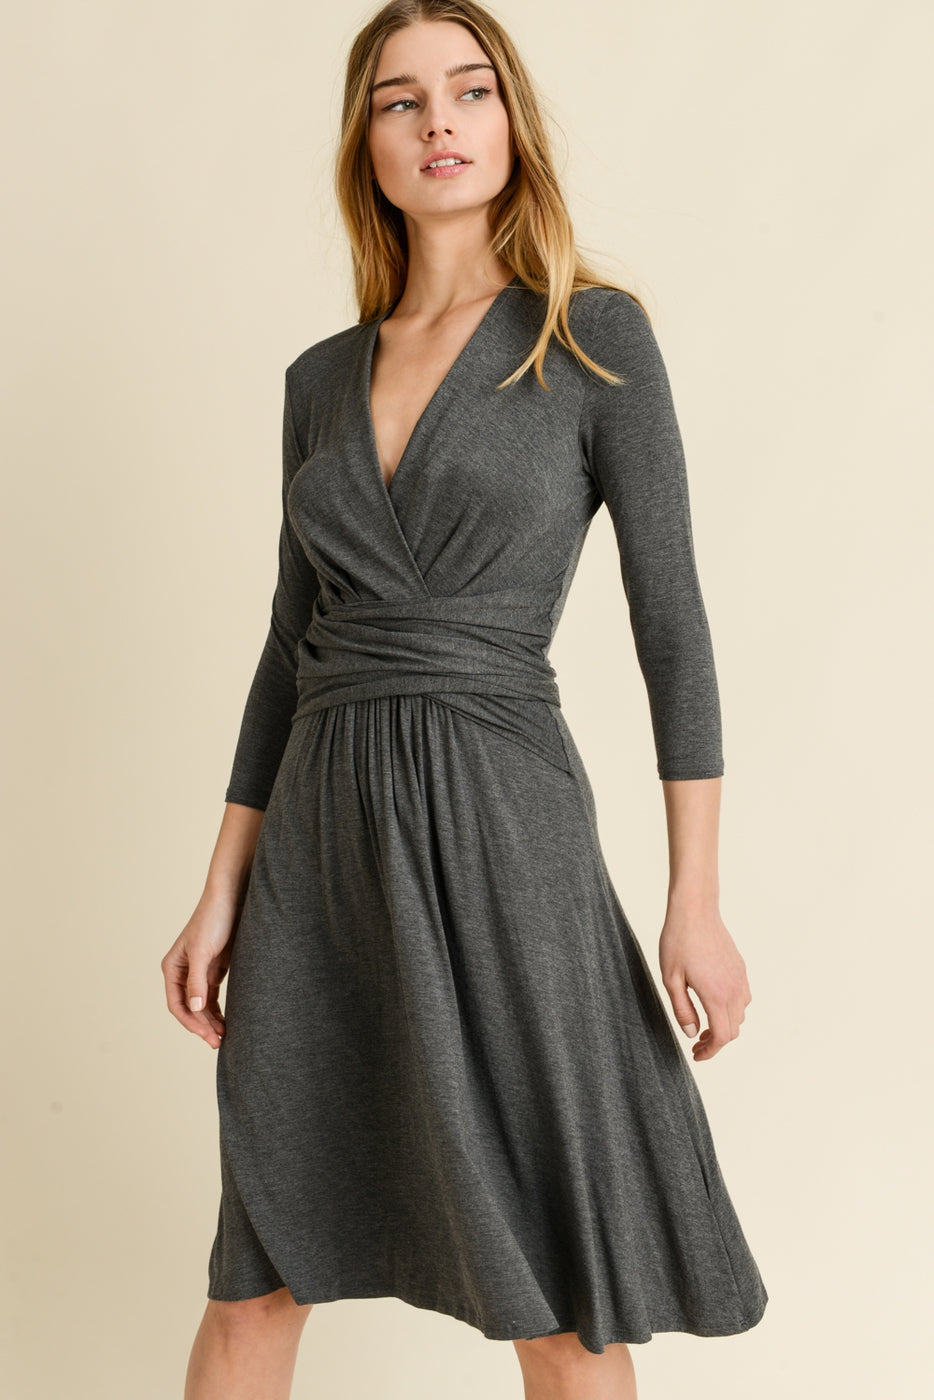 """Two-Way"" Wrap Dress in Charcoal"